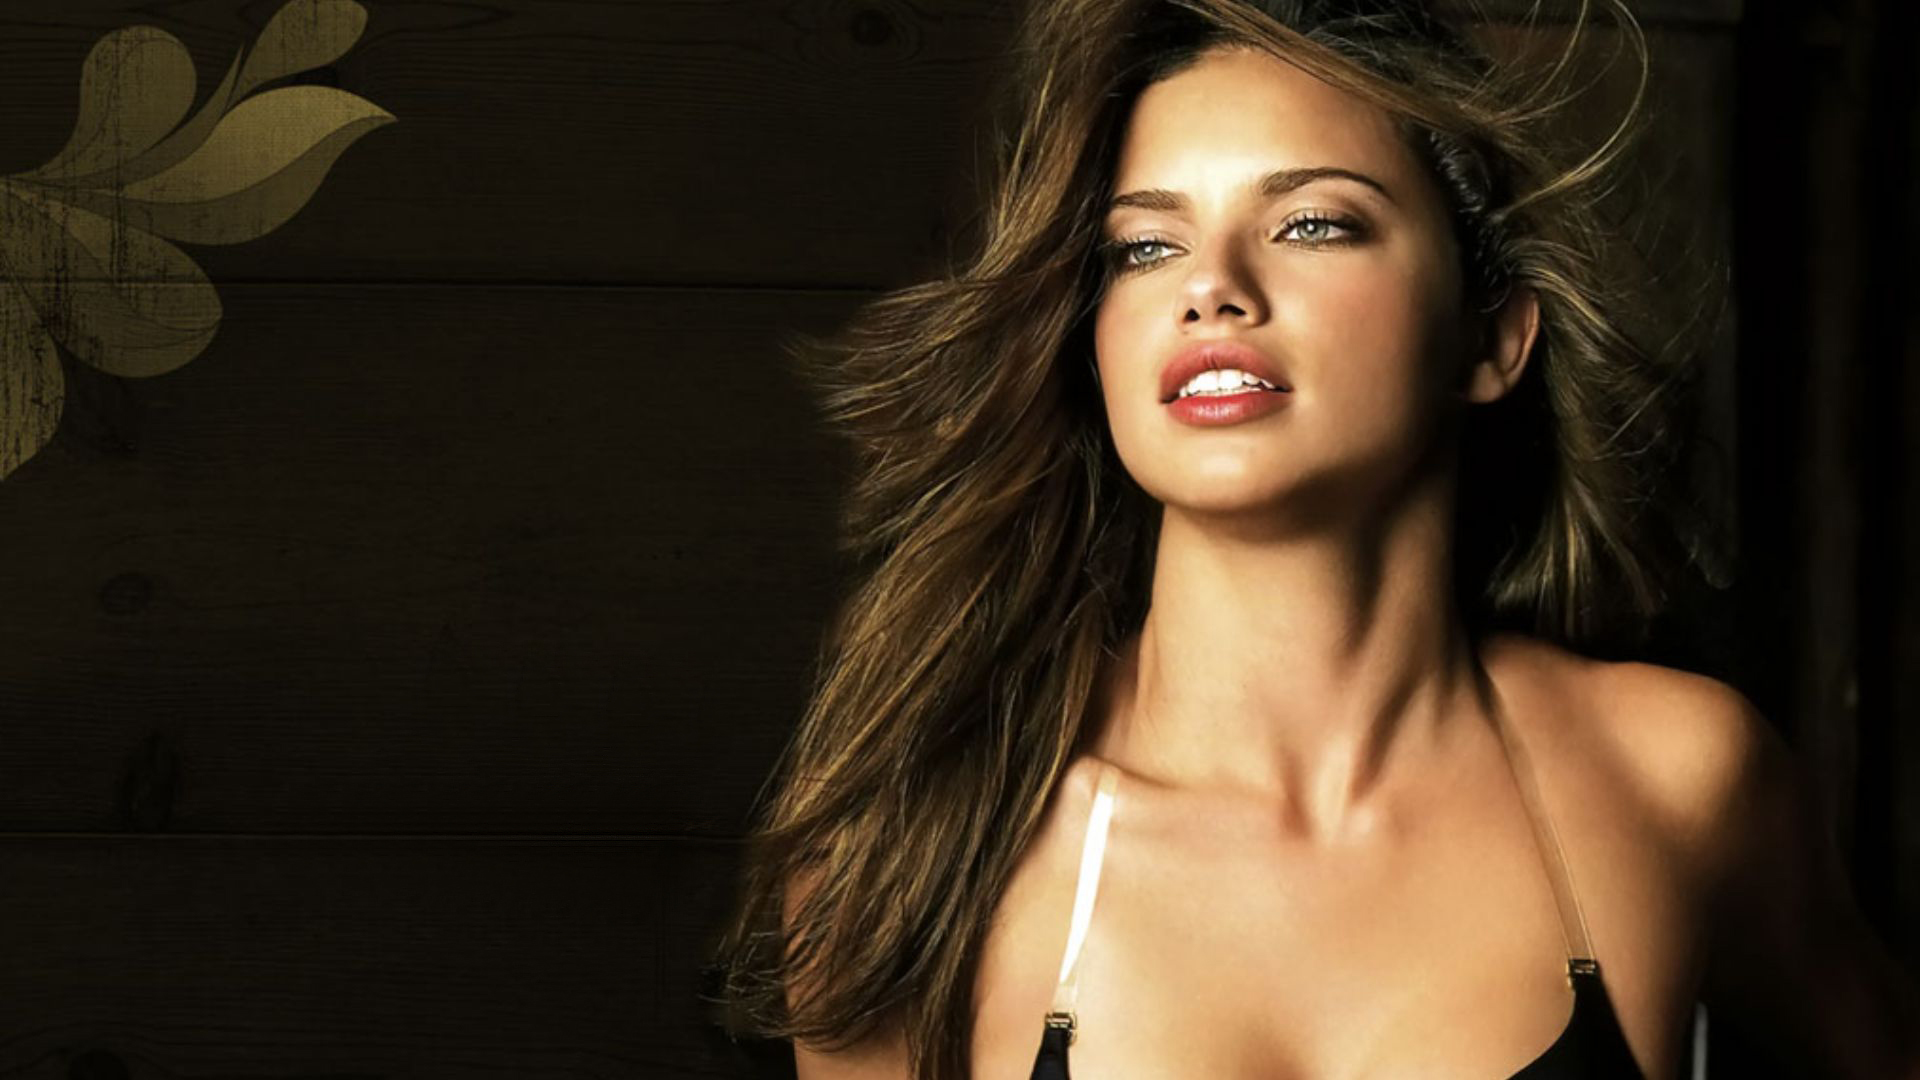 Adriana lima wallpapers hd voltagebd